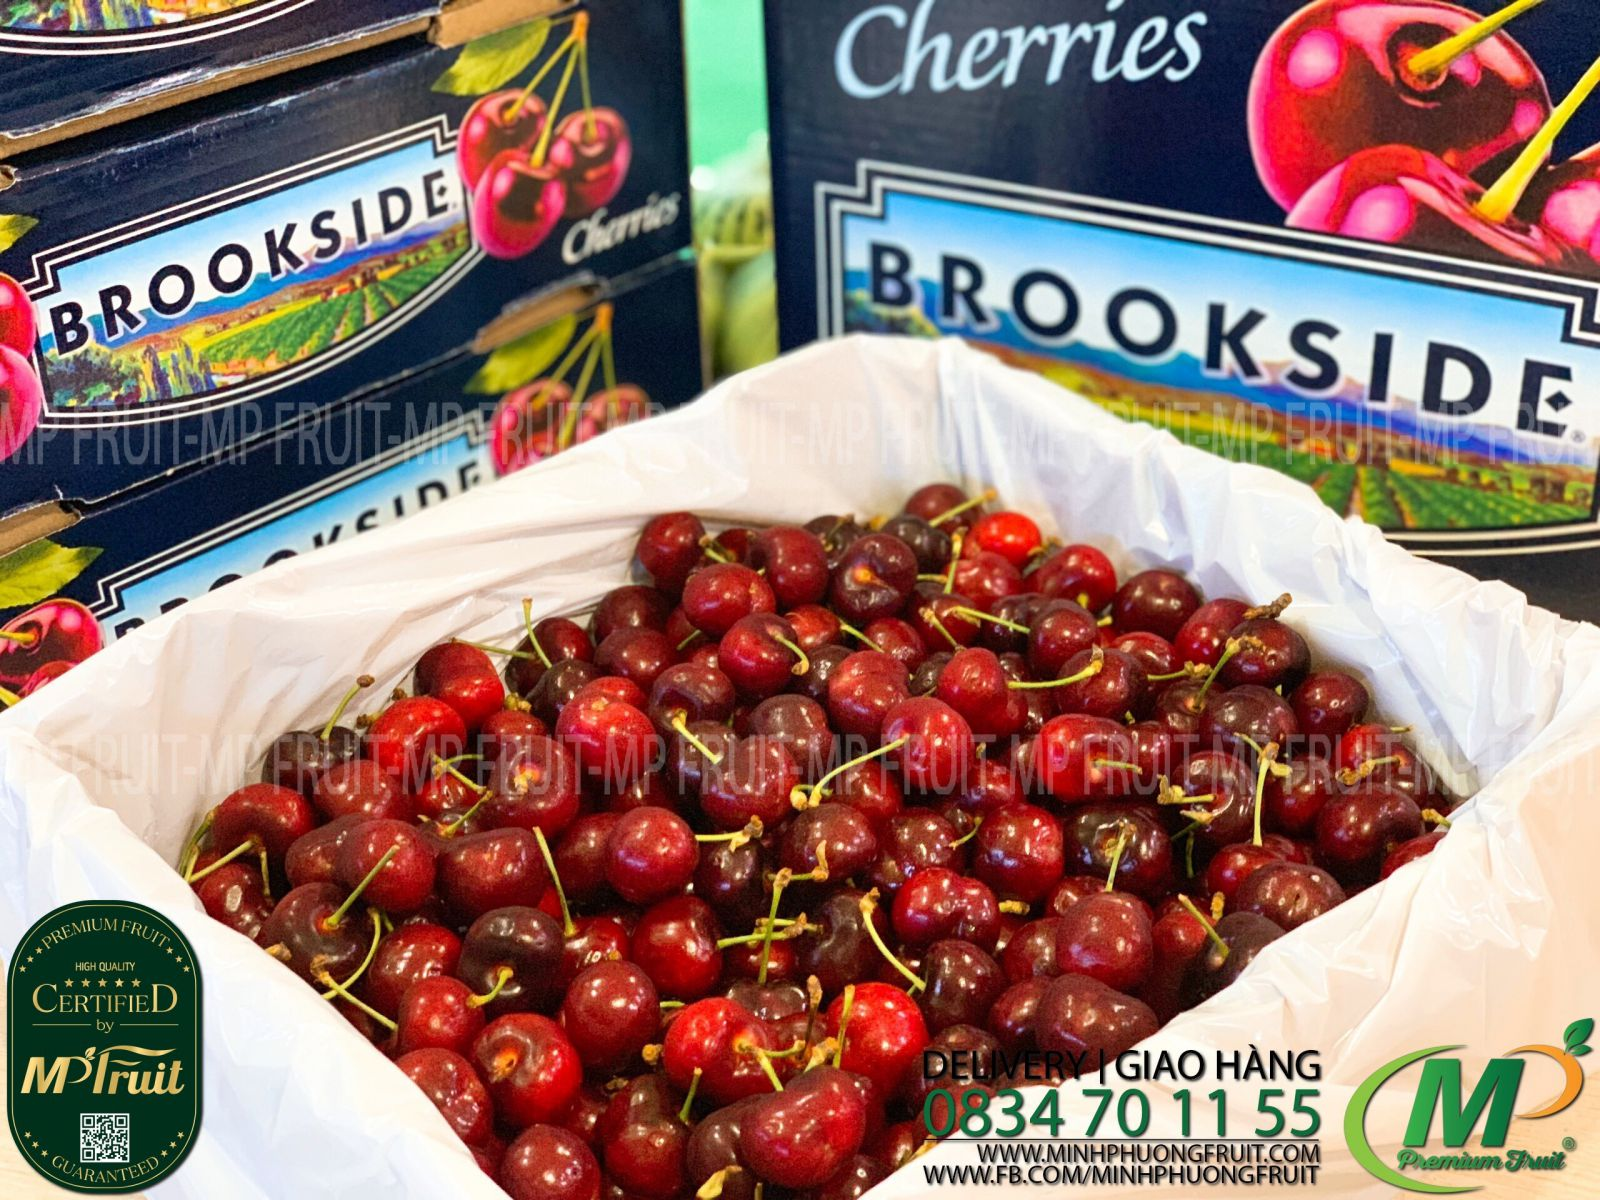 Cherry Đỏ Brookside Mỹ tại MP Fruits